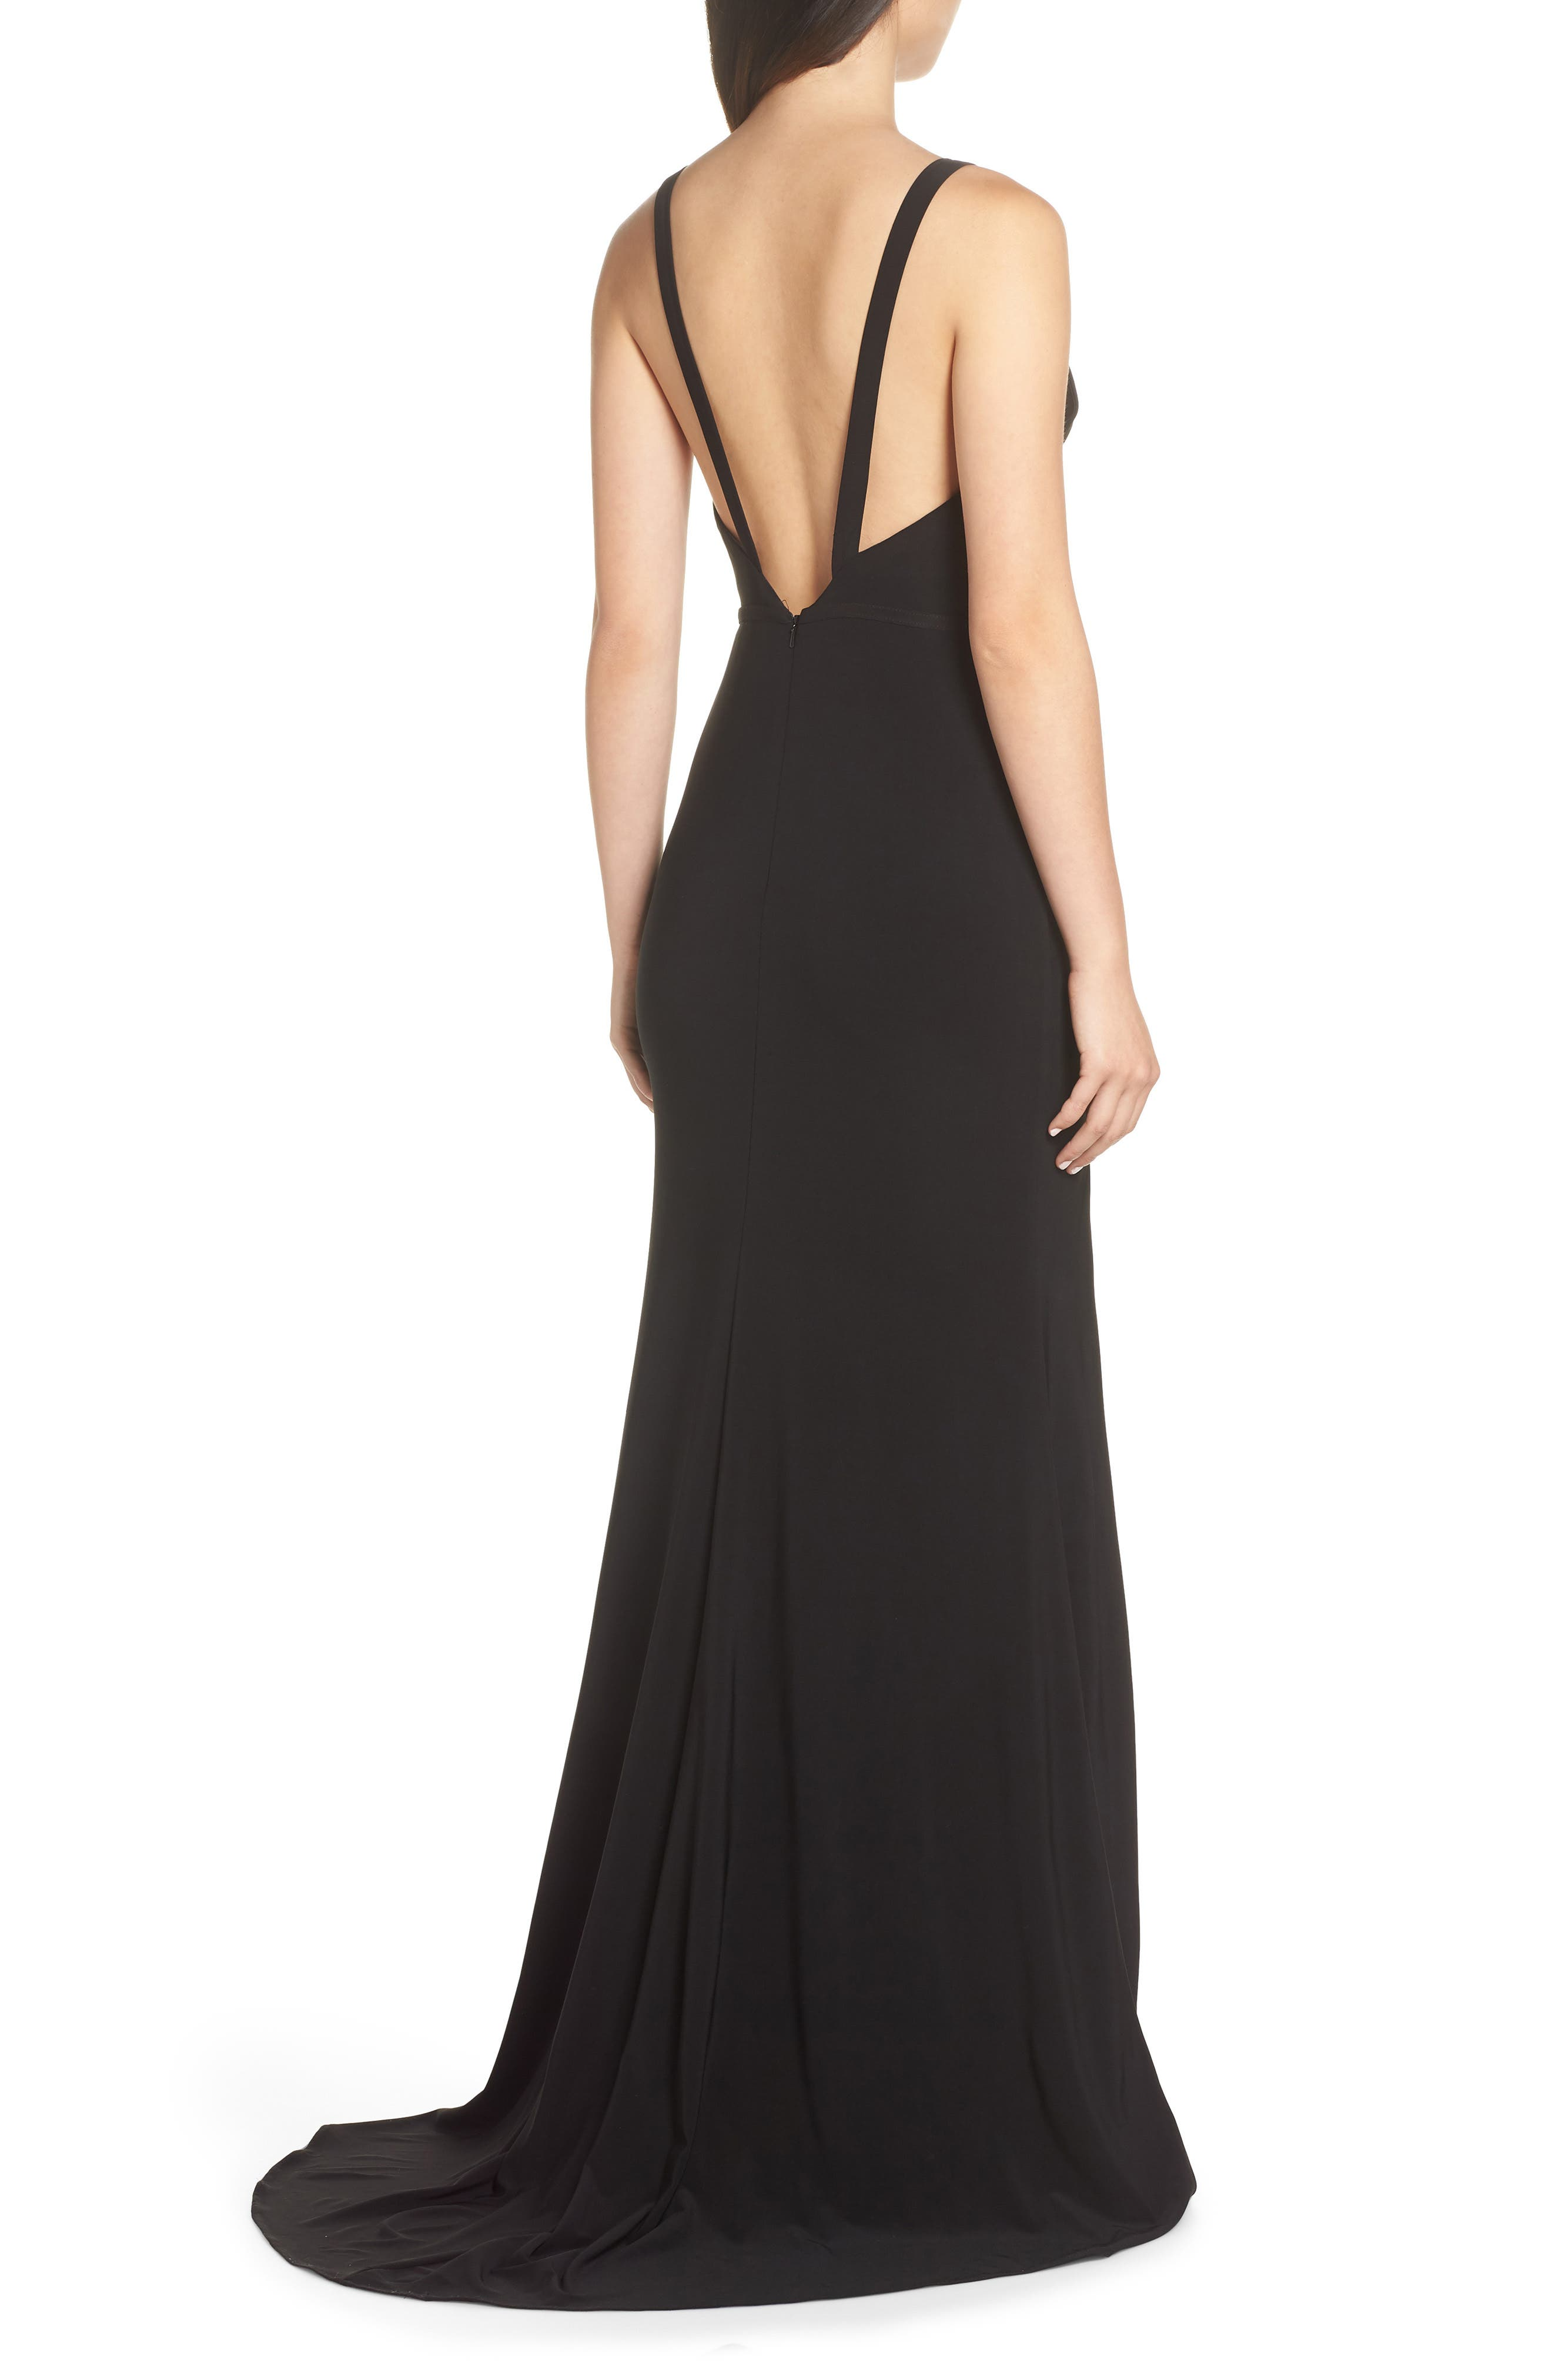 IEENA FOR MAC DUGGAL, Mac Duggal Plunge Neck Slit Jersey Gown, Alternate thumbnail 2, color, BLACK